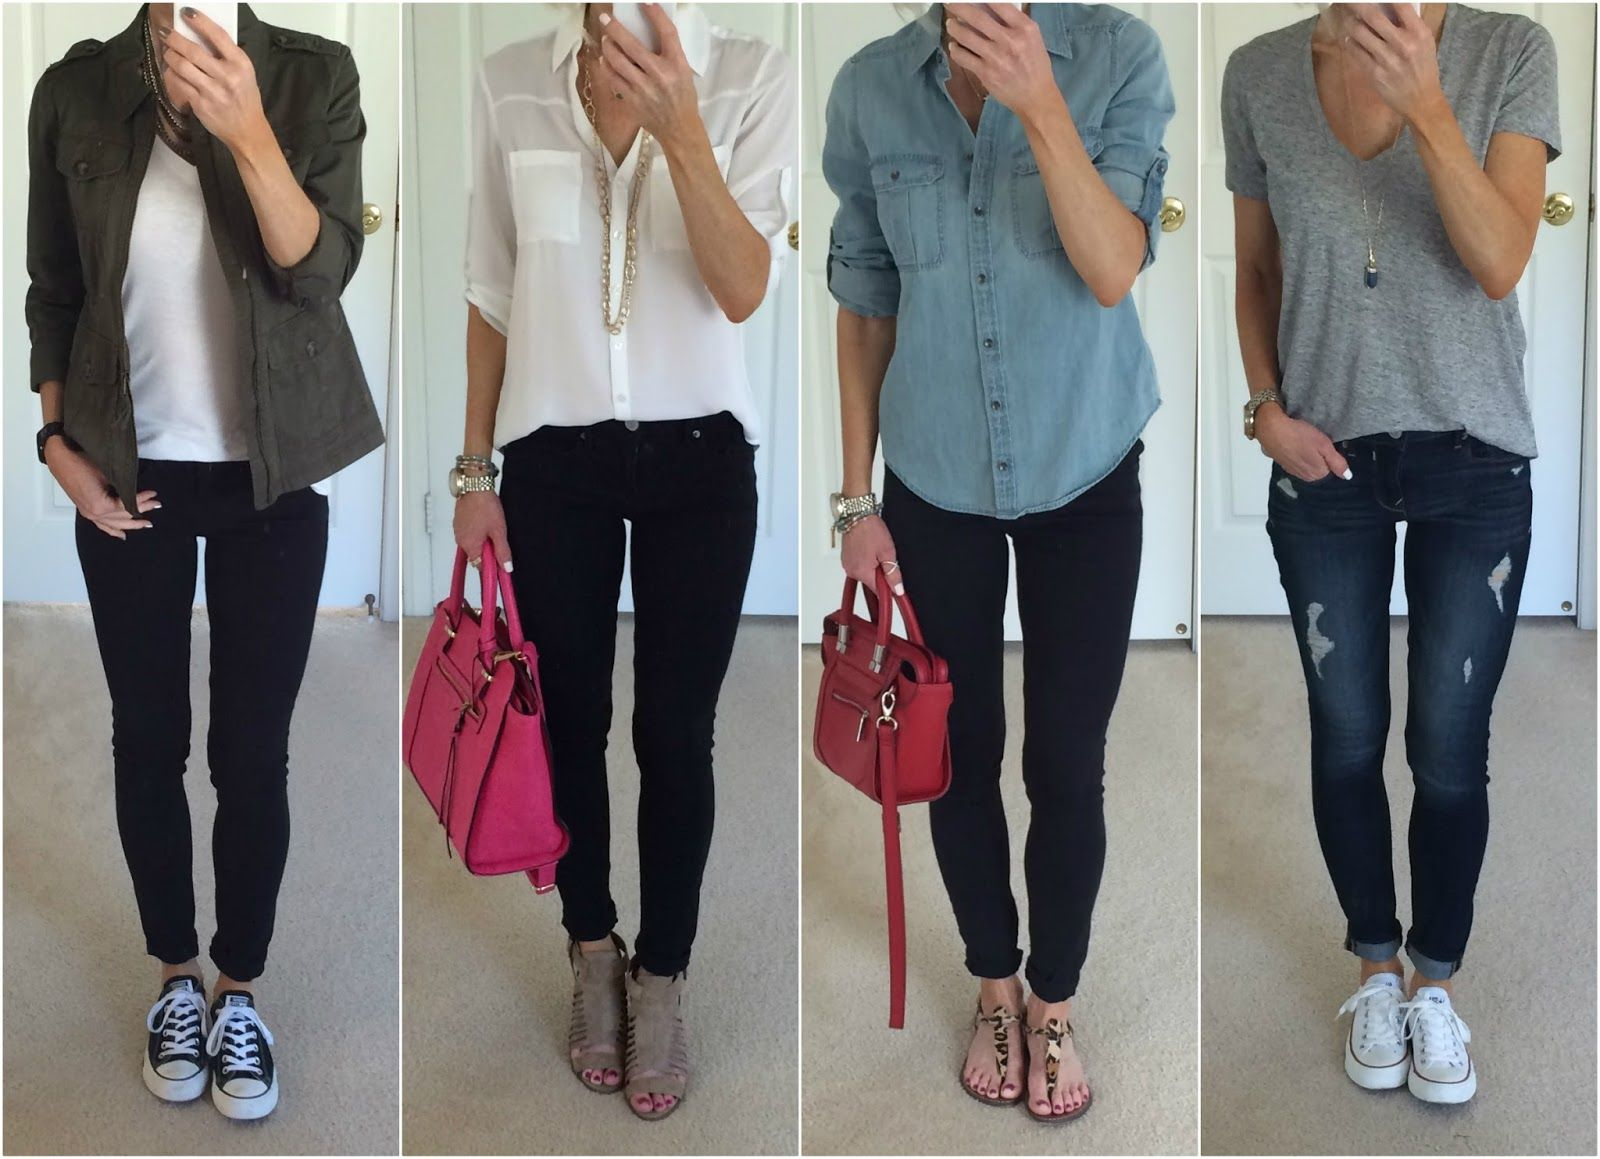 42+ Field trip outfit ideas inspirations